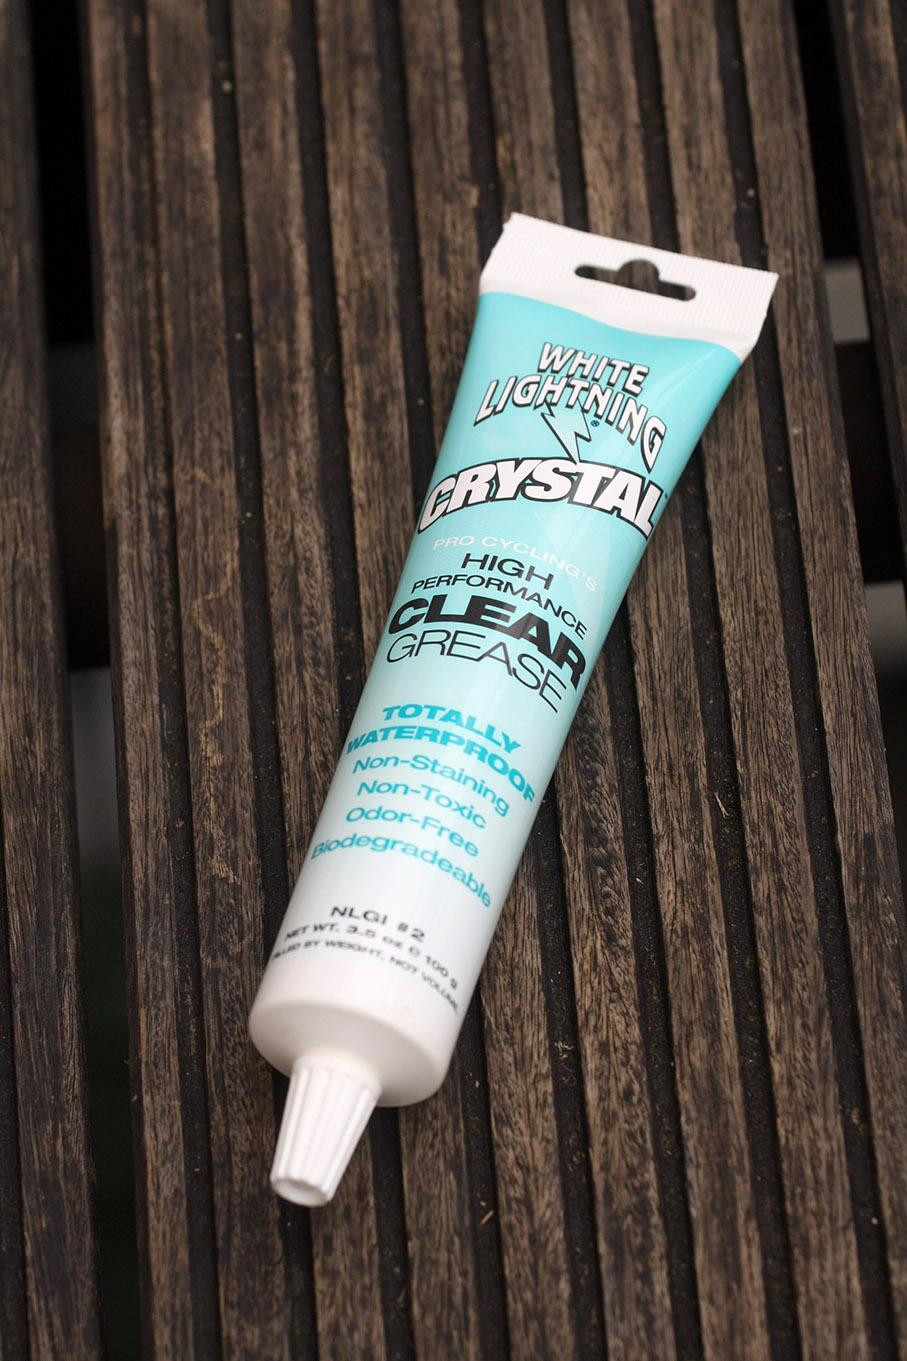 White Lightning Crystal Clear Grease